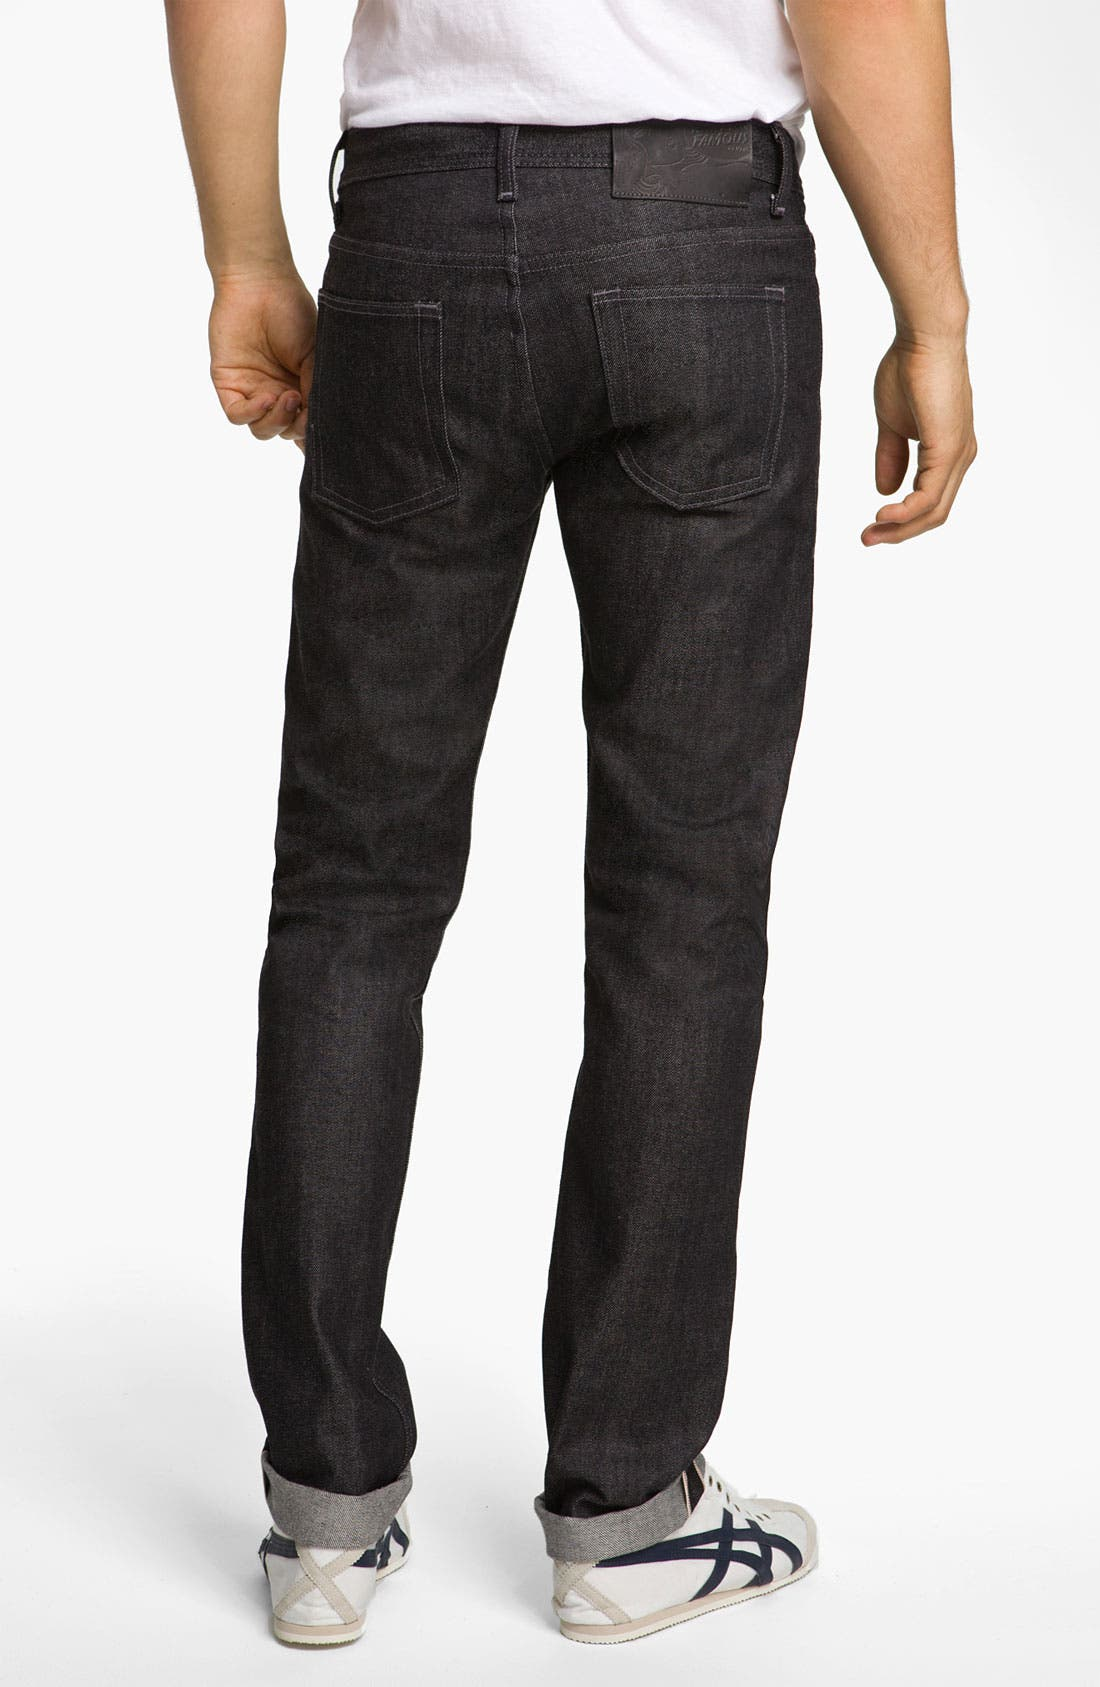 Main Image - Naked & Famous Denim 'Weird Guy' Slim Fit Selvedge Jeans (Black)